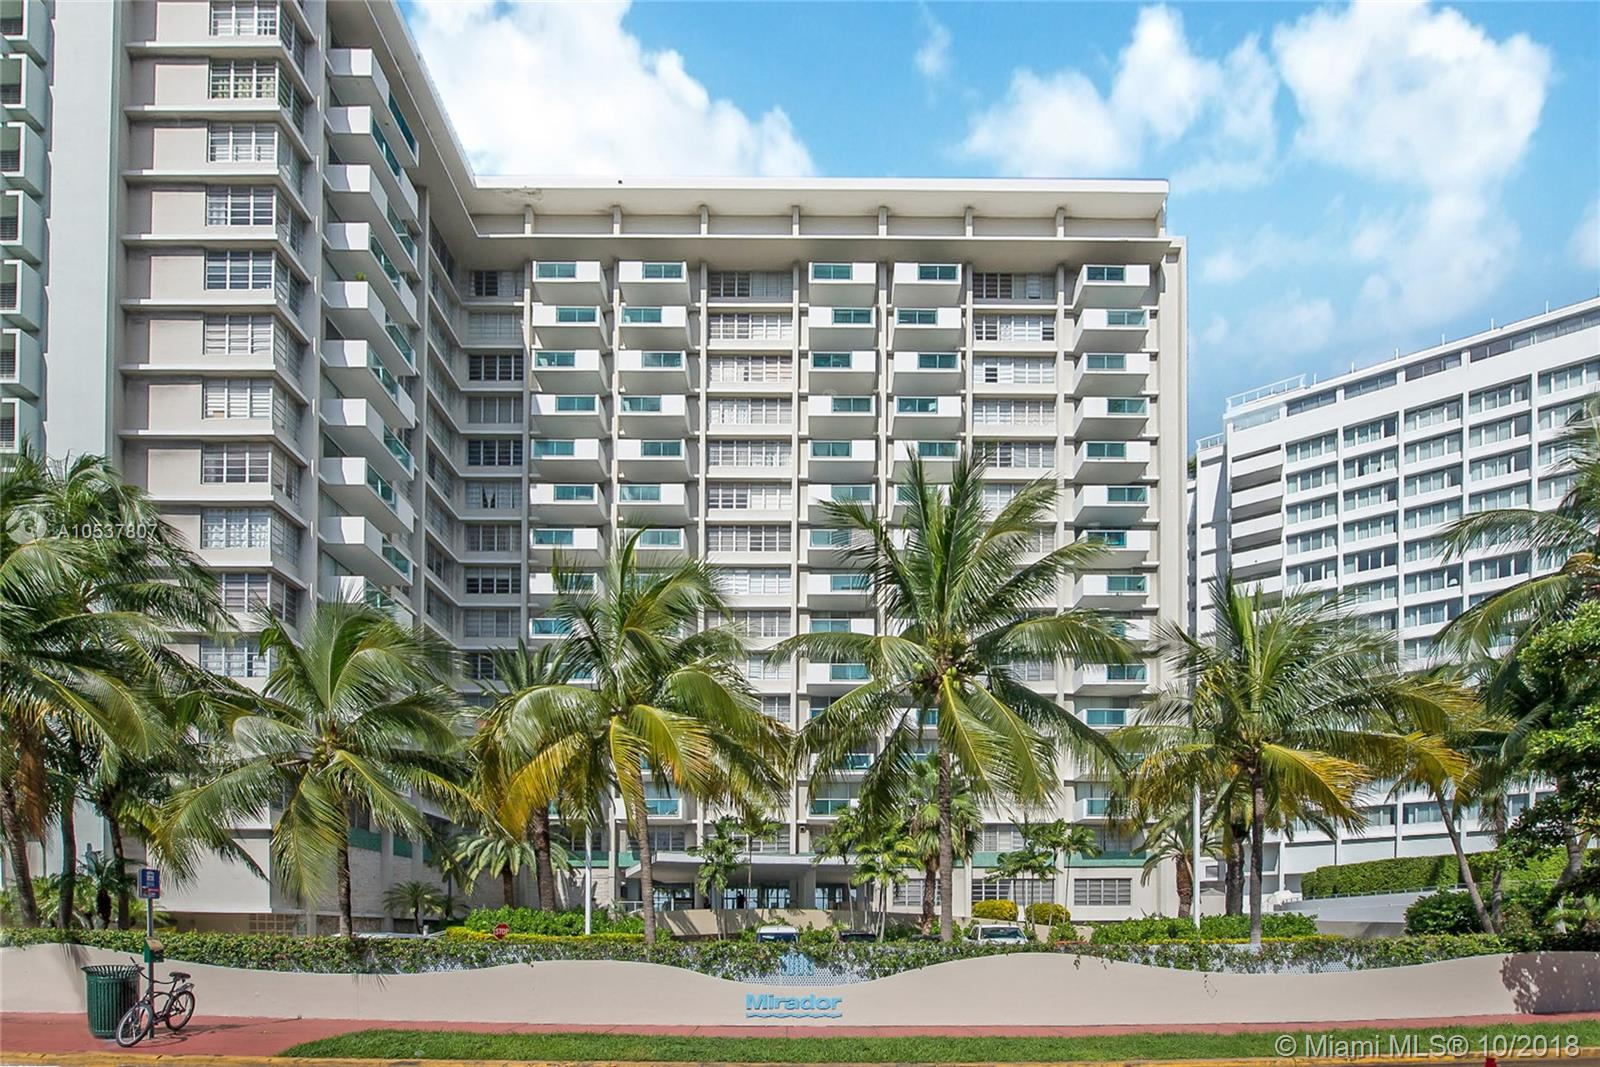 Mirador South #821 - 1000 West Ave #821, Miami Beach, FL 33139